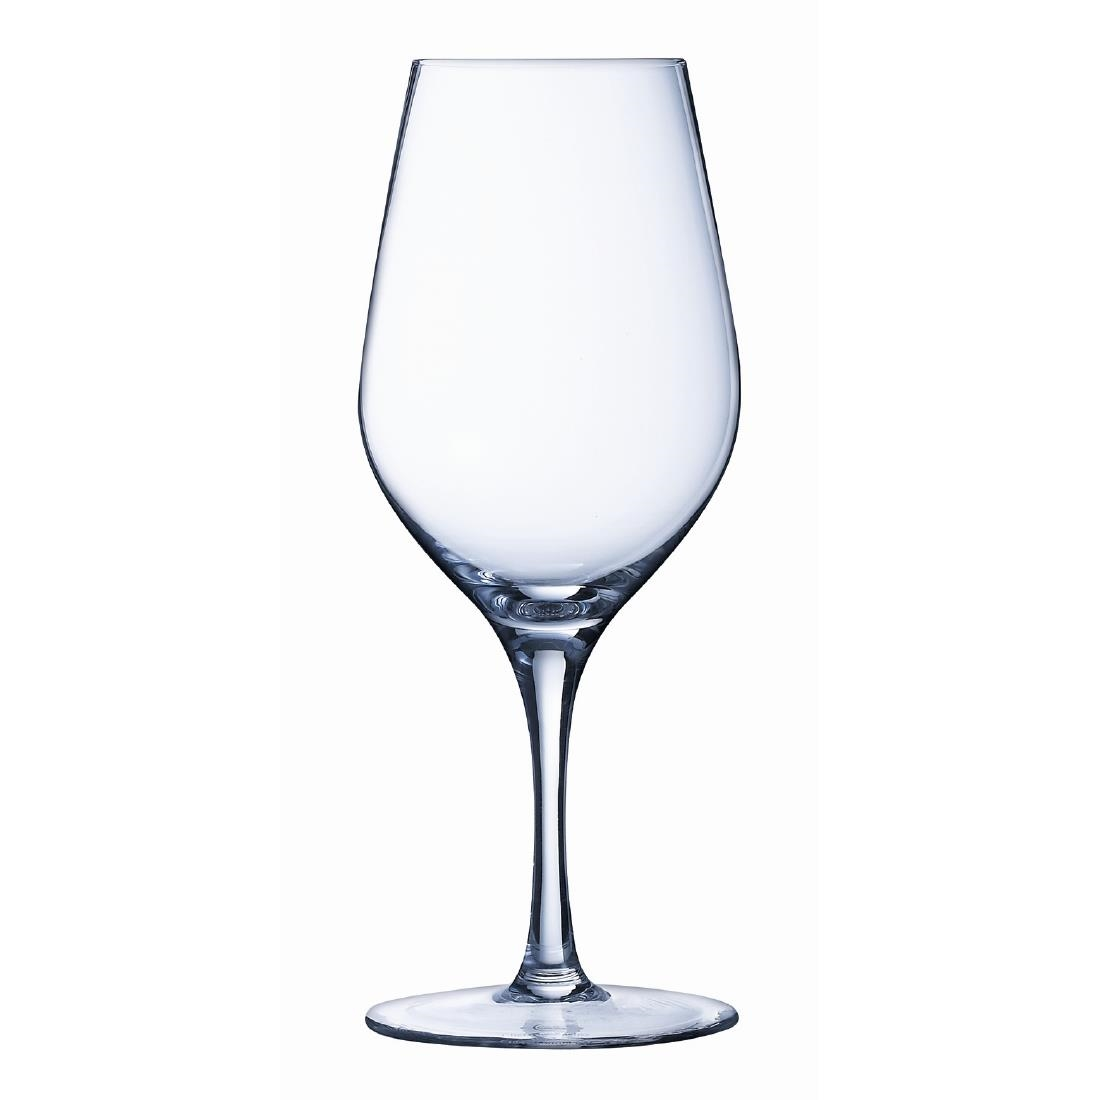 Image of Chef & Sommelier Cabernet Bordeaux Wine Glass 16oz (Pack of 12) Pack of 12